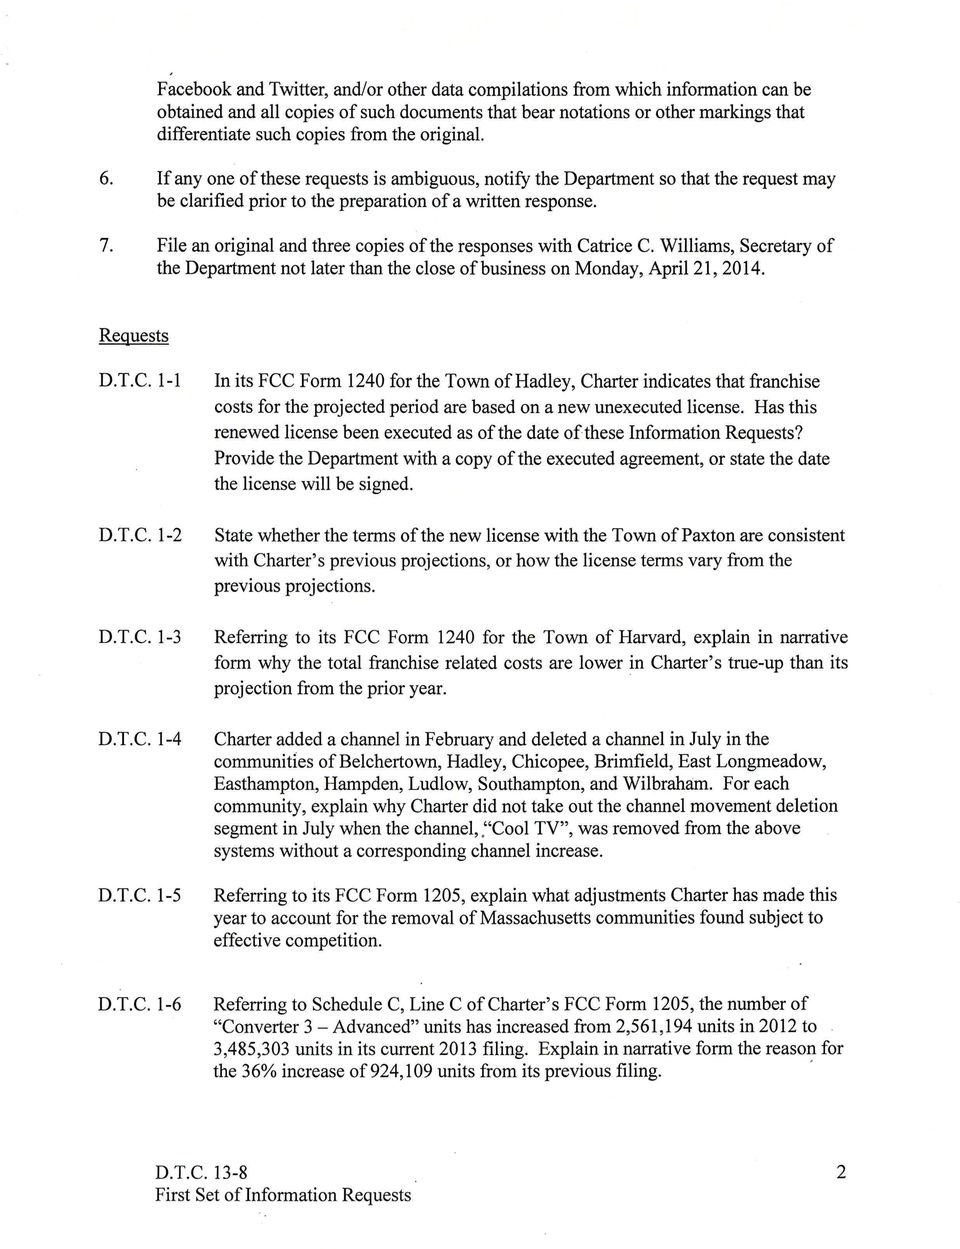 File an original and three copies of the responses with Catrice C. Williams, Secretary of the Department not later than the close of business on Monday, April 21, 2014. Requests D.T.C. 1-1 D.T.C. 1-2 D.